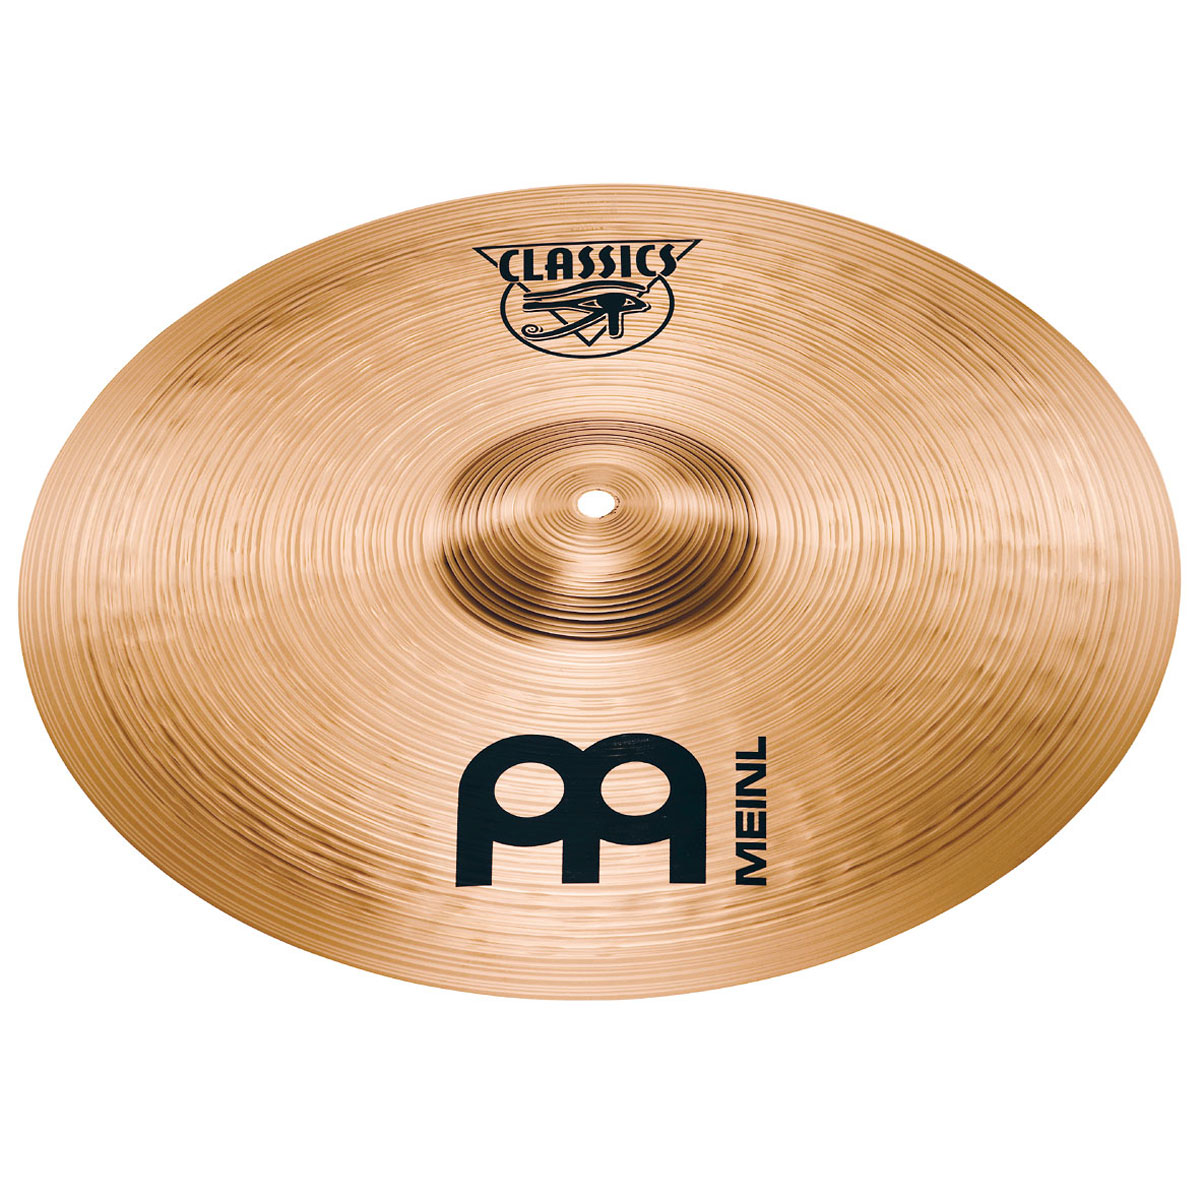 "Meinl 21"" Classic Medium Ride Cymbal"